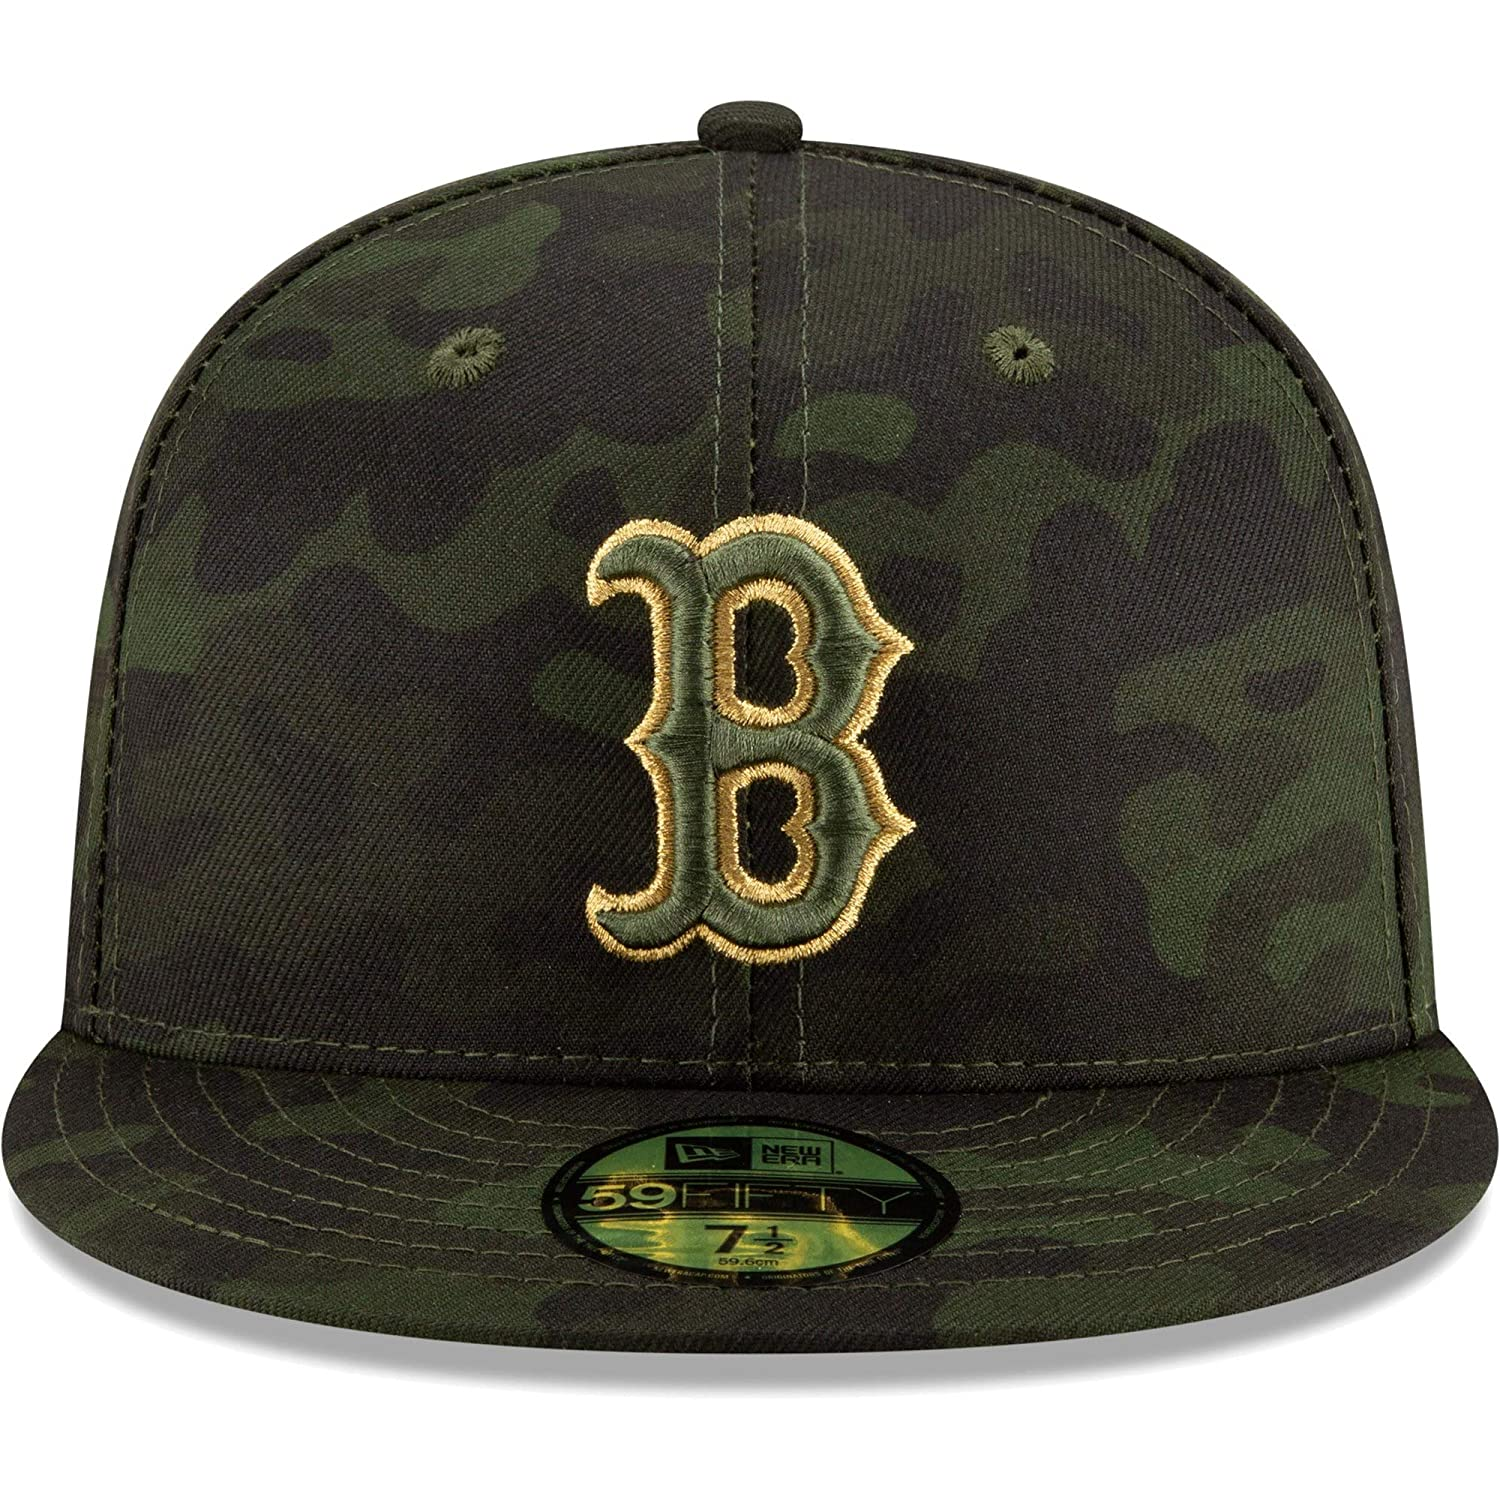 e3712c28fff8a0 Amazon.com : New Era Boston Red Sox 2019 MLB Armed Forces Day On-Field  59FIFTY Fitted Hat - Camo : Sports & Outdoors